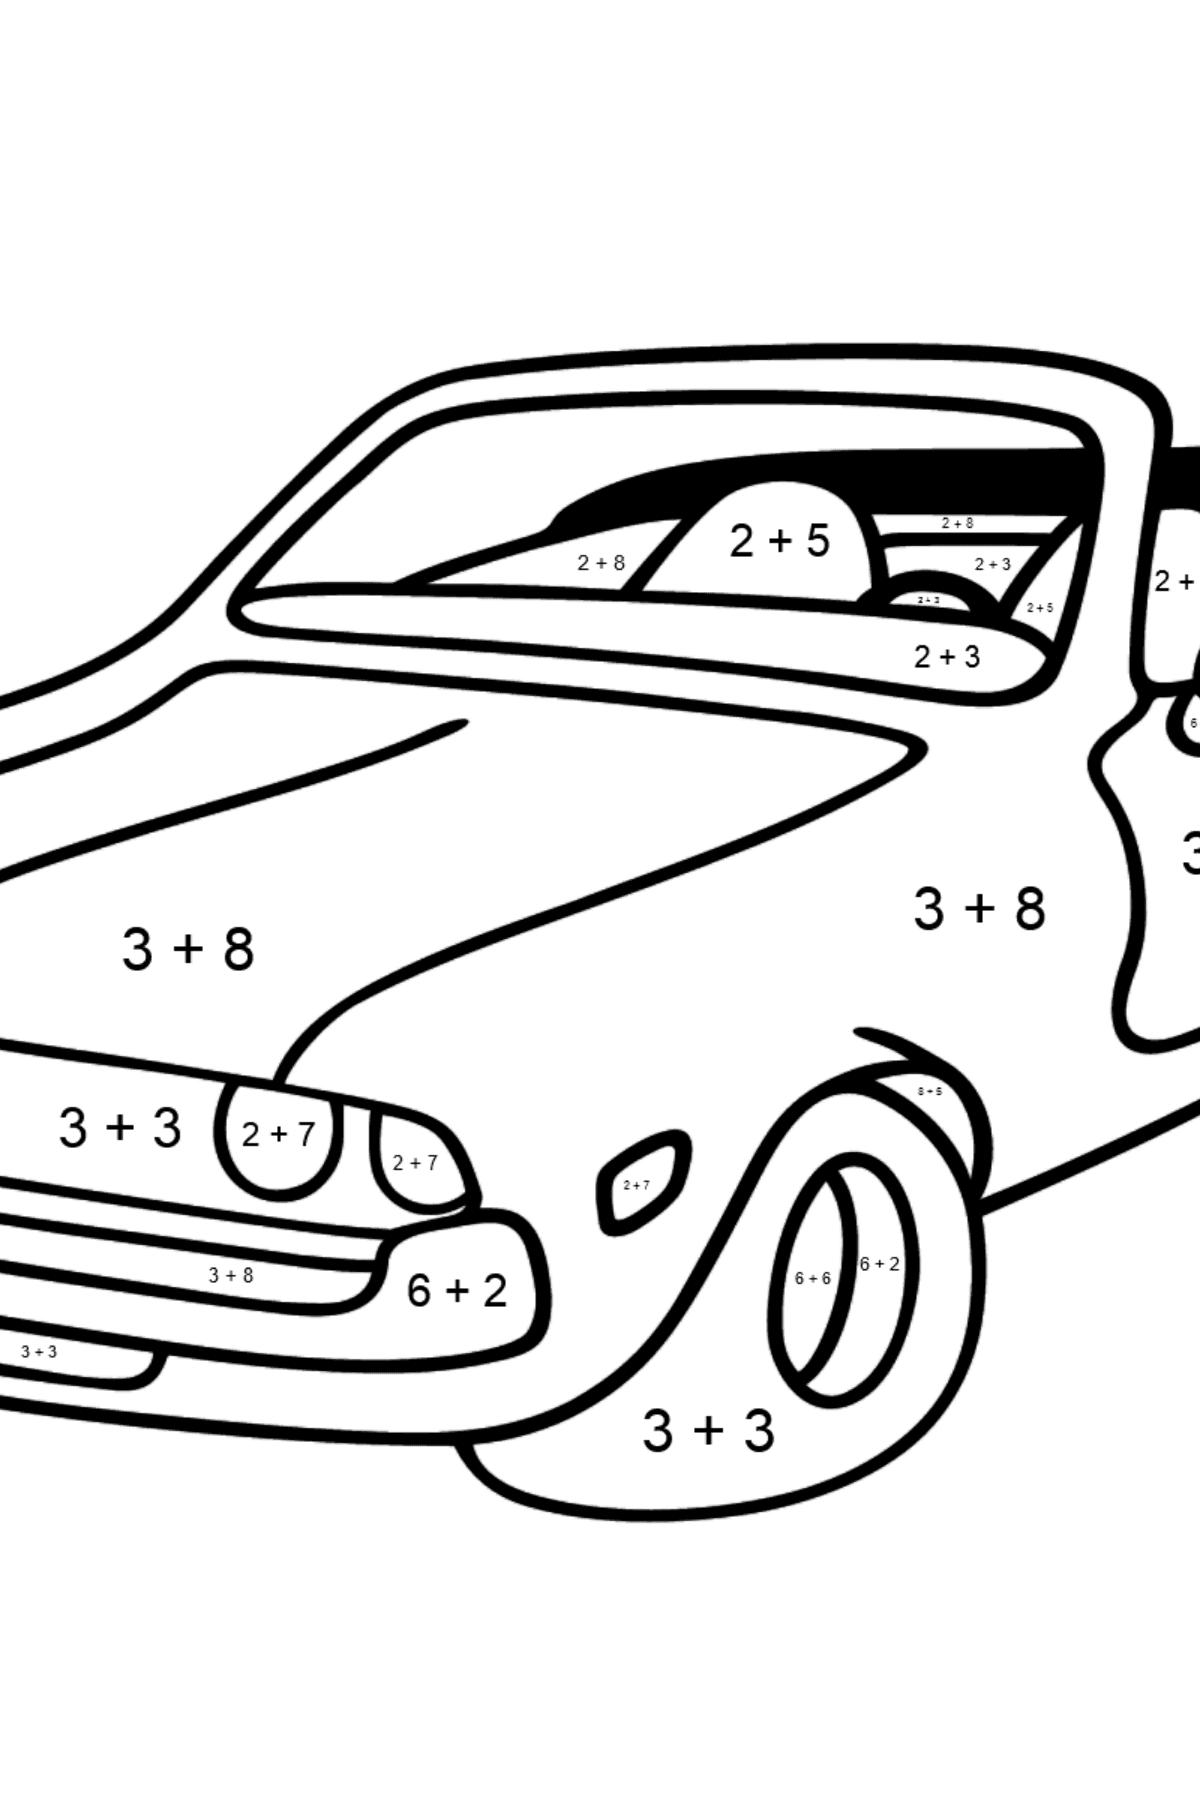 Open Top Cars coloring page - Math Coloring - Addition for Kids